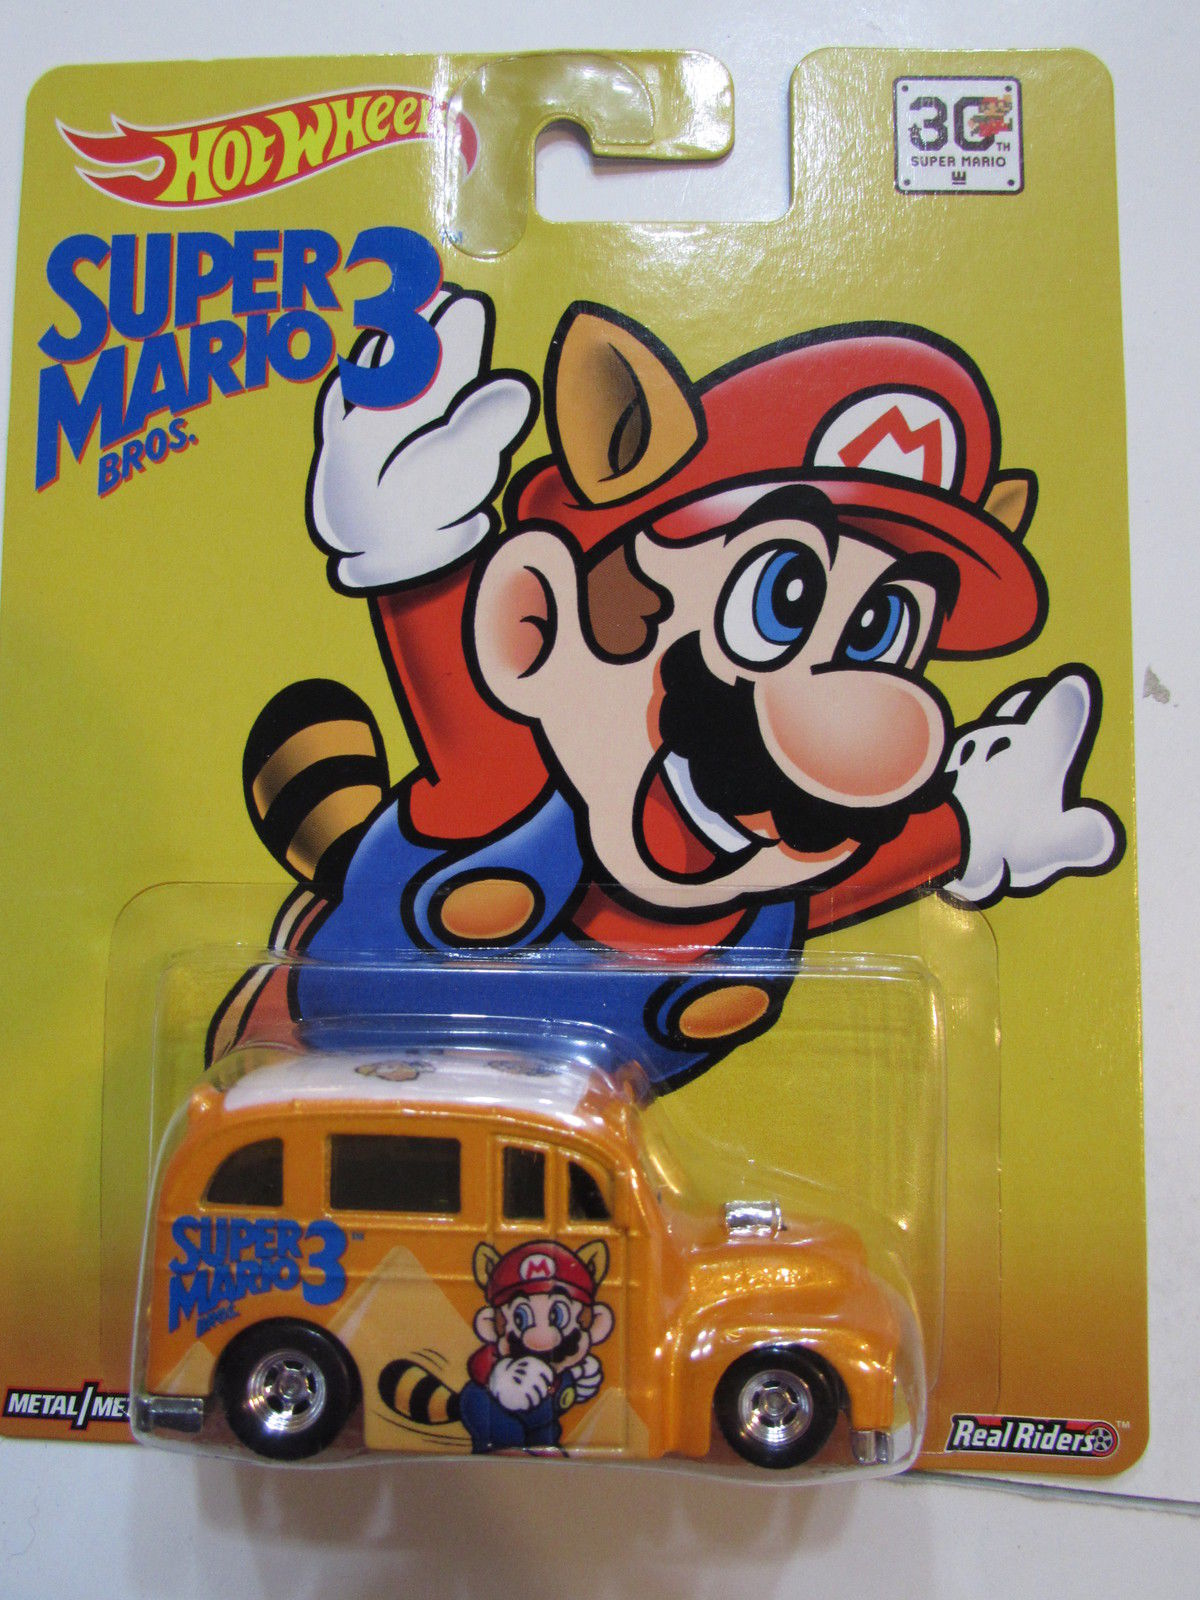 HOT WHEELS SUPER MARIO 3 SCHOOL BUSTED